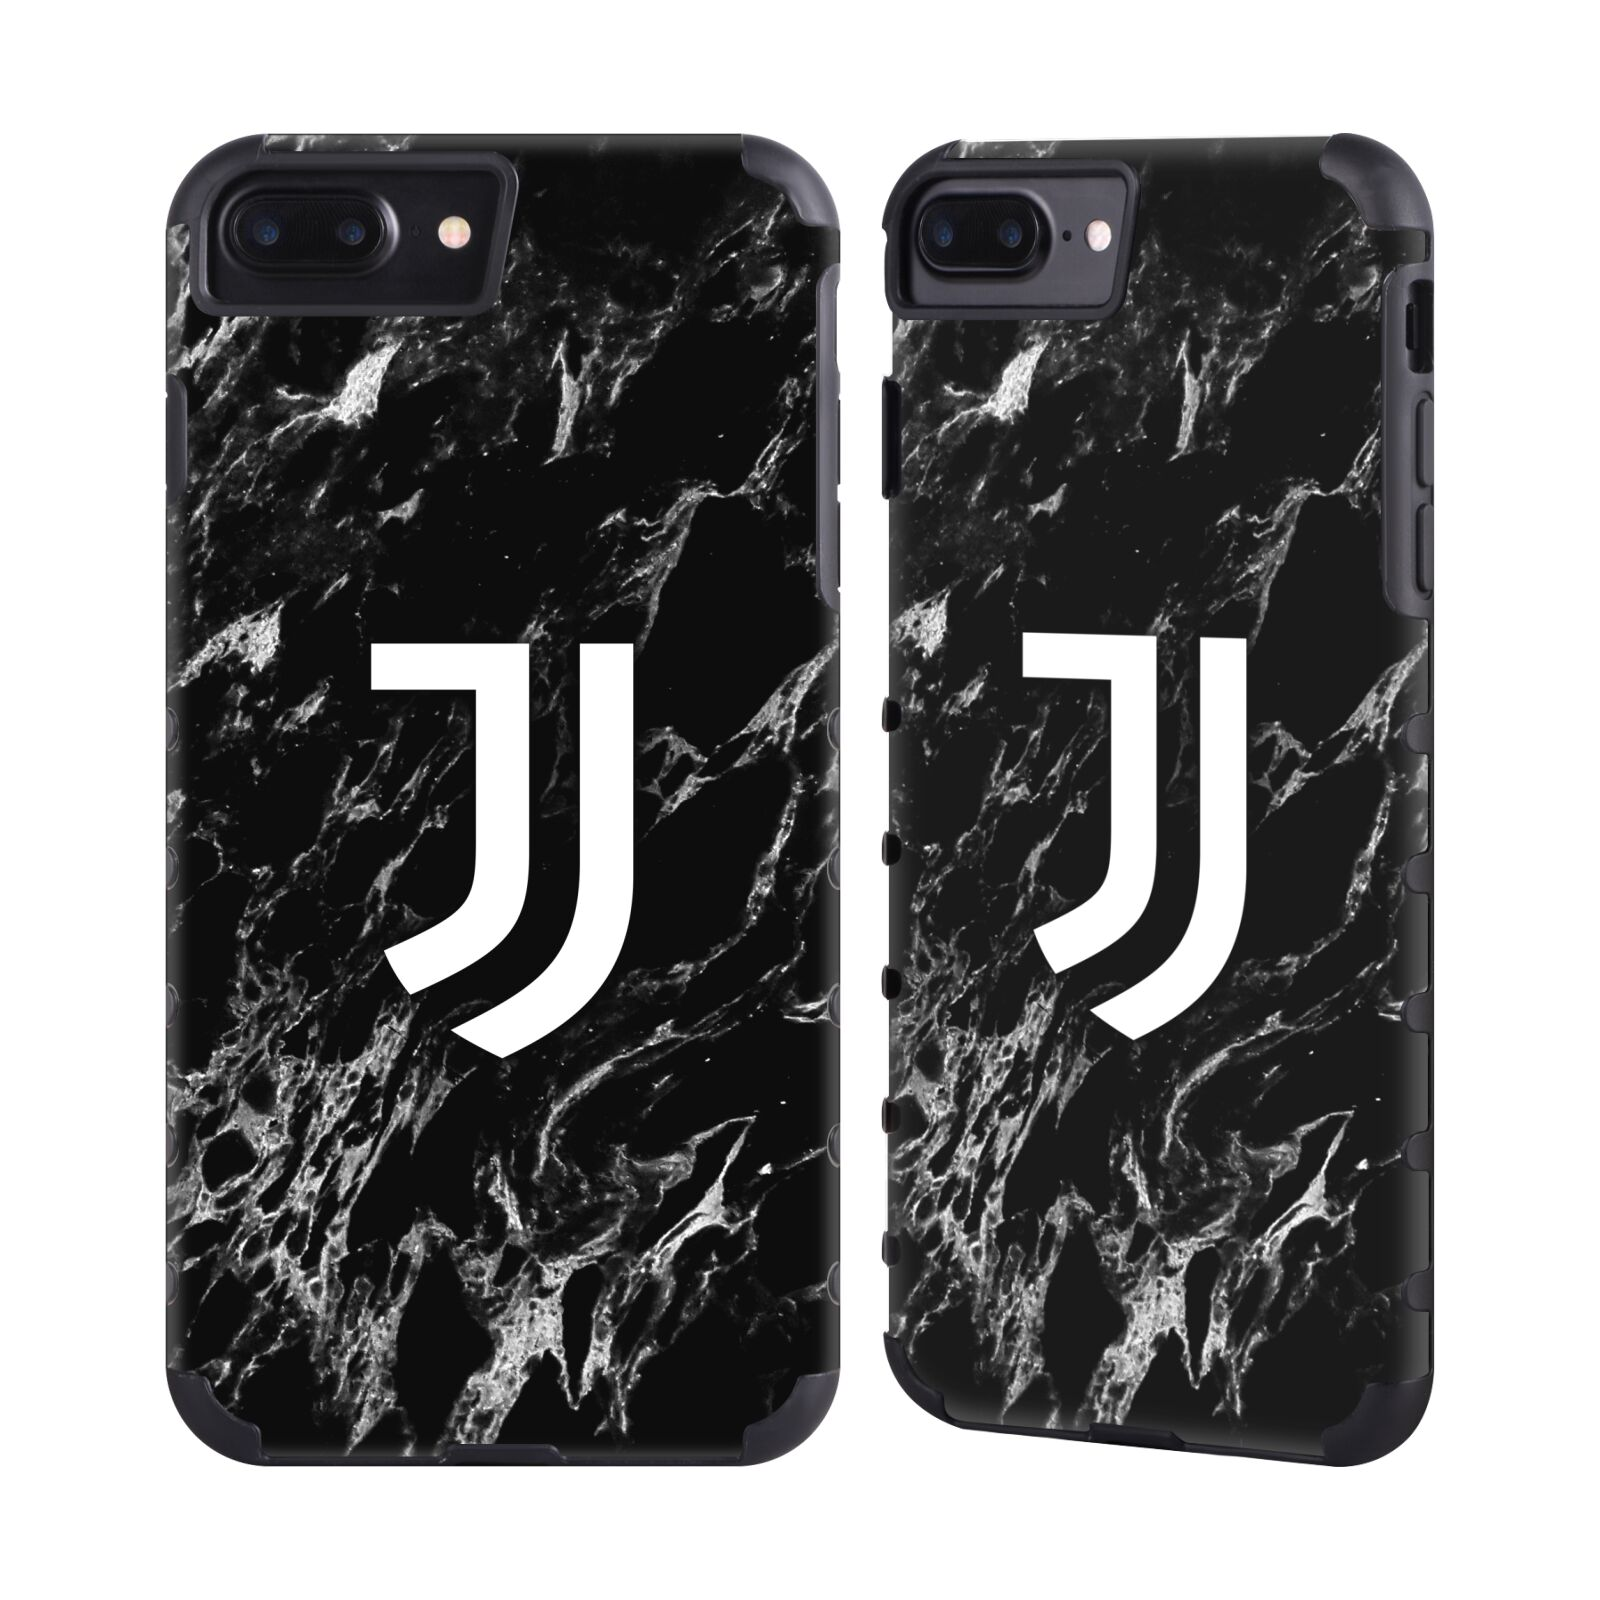 JUVENTUS-FOOTBALL-CLUB-2017-18-MARBLE-GOLD-GRIPPER-CASE-FOR-APPLE-iPHONE-PHONES